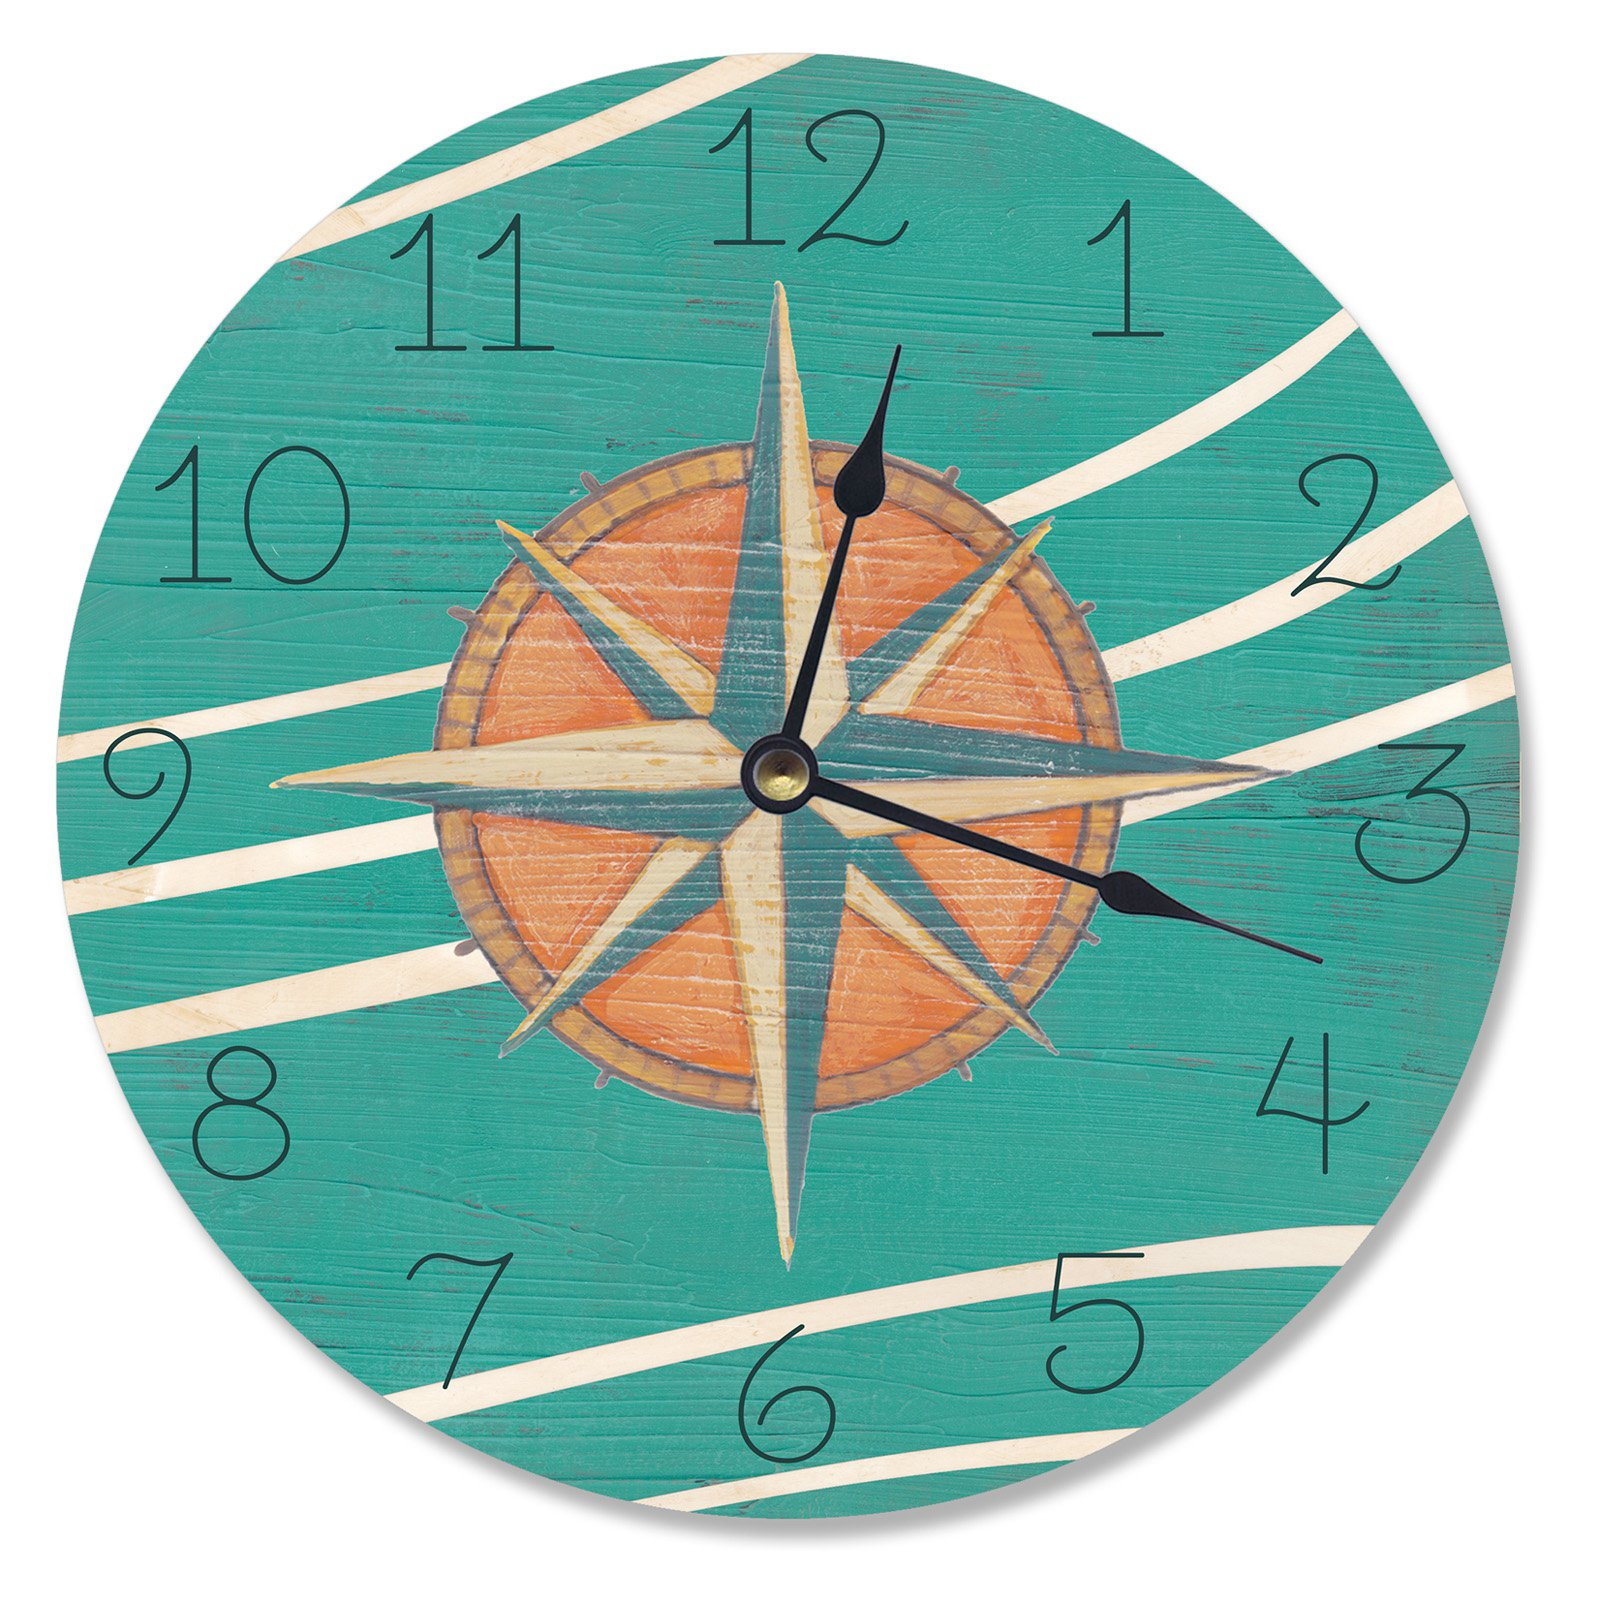 The Stupell Home Decor Collection 12 in. Teal and Coral Nautical Compass Vanity Wall Clock